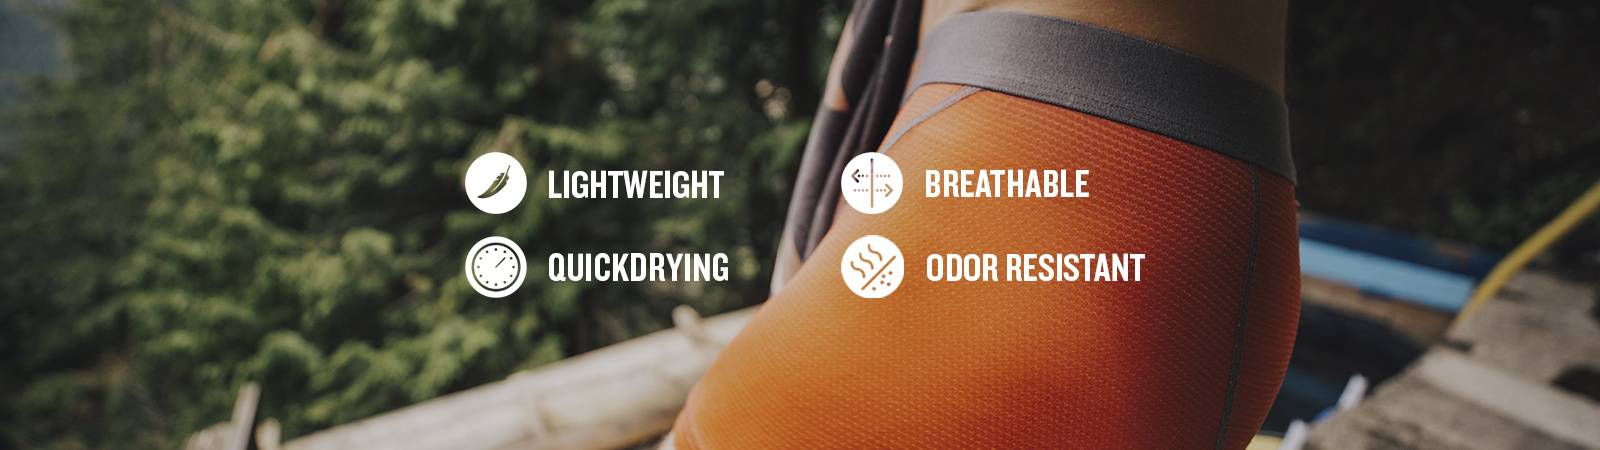 featuring these technologies: lightweight, breathable, quick drying and odor resistant.